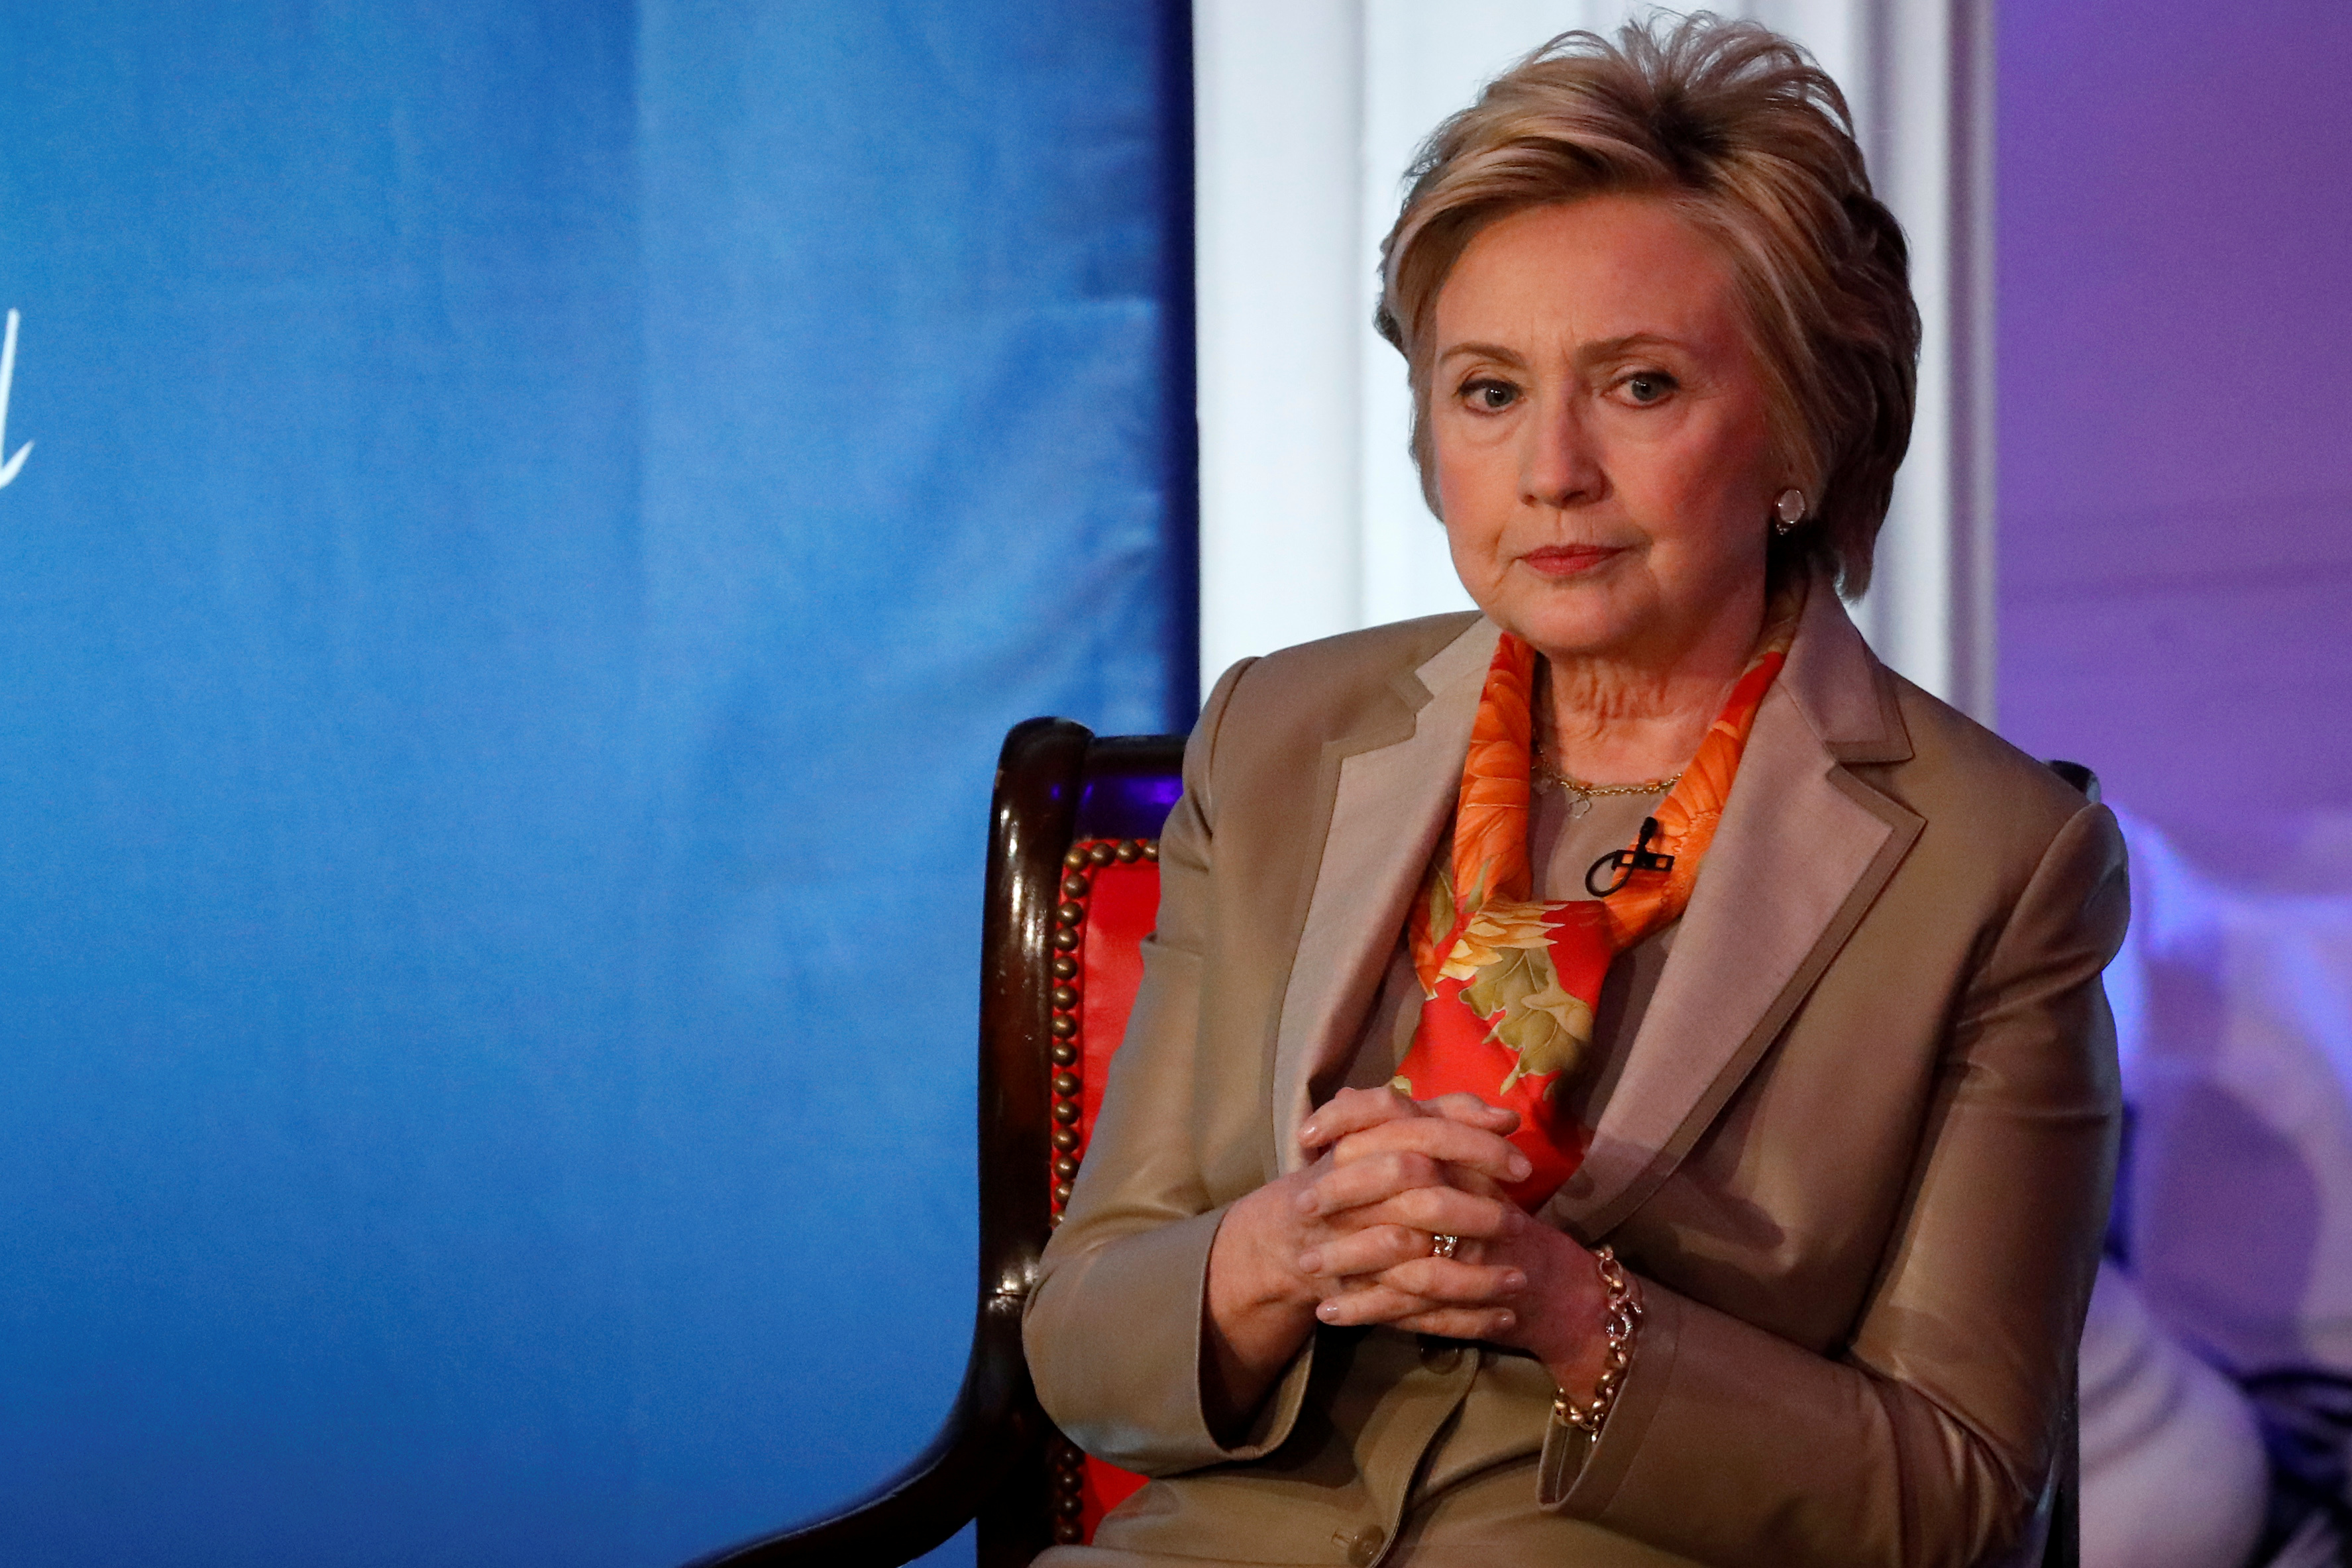 Former U.S. Secretary of State Hillary Clinton takes part in the Women for Women International Luncheon in New York City, New York, May 2, 2017.